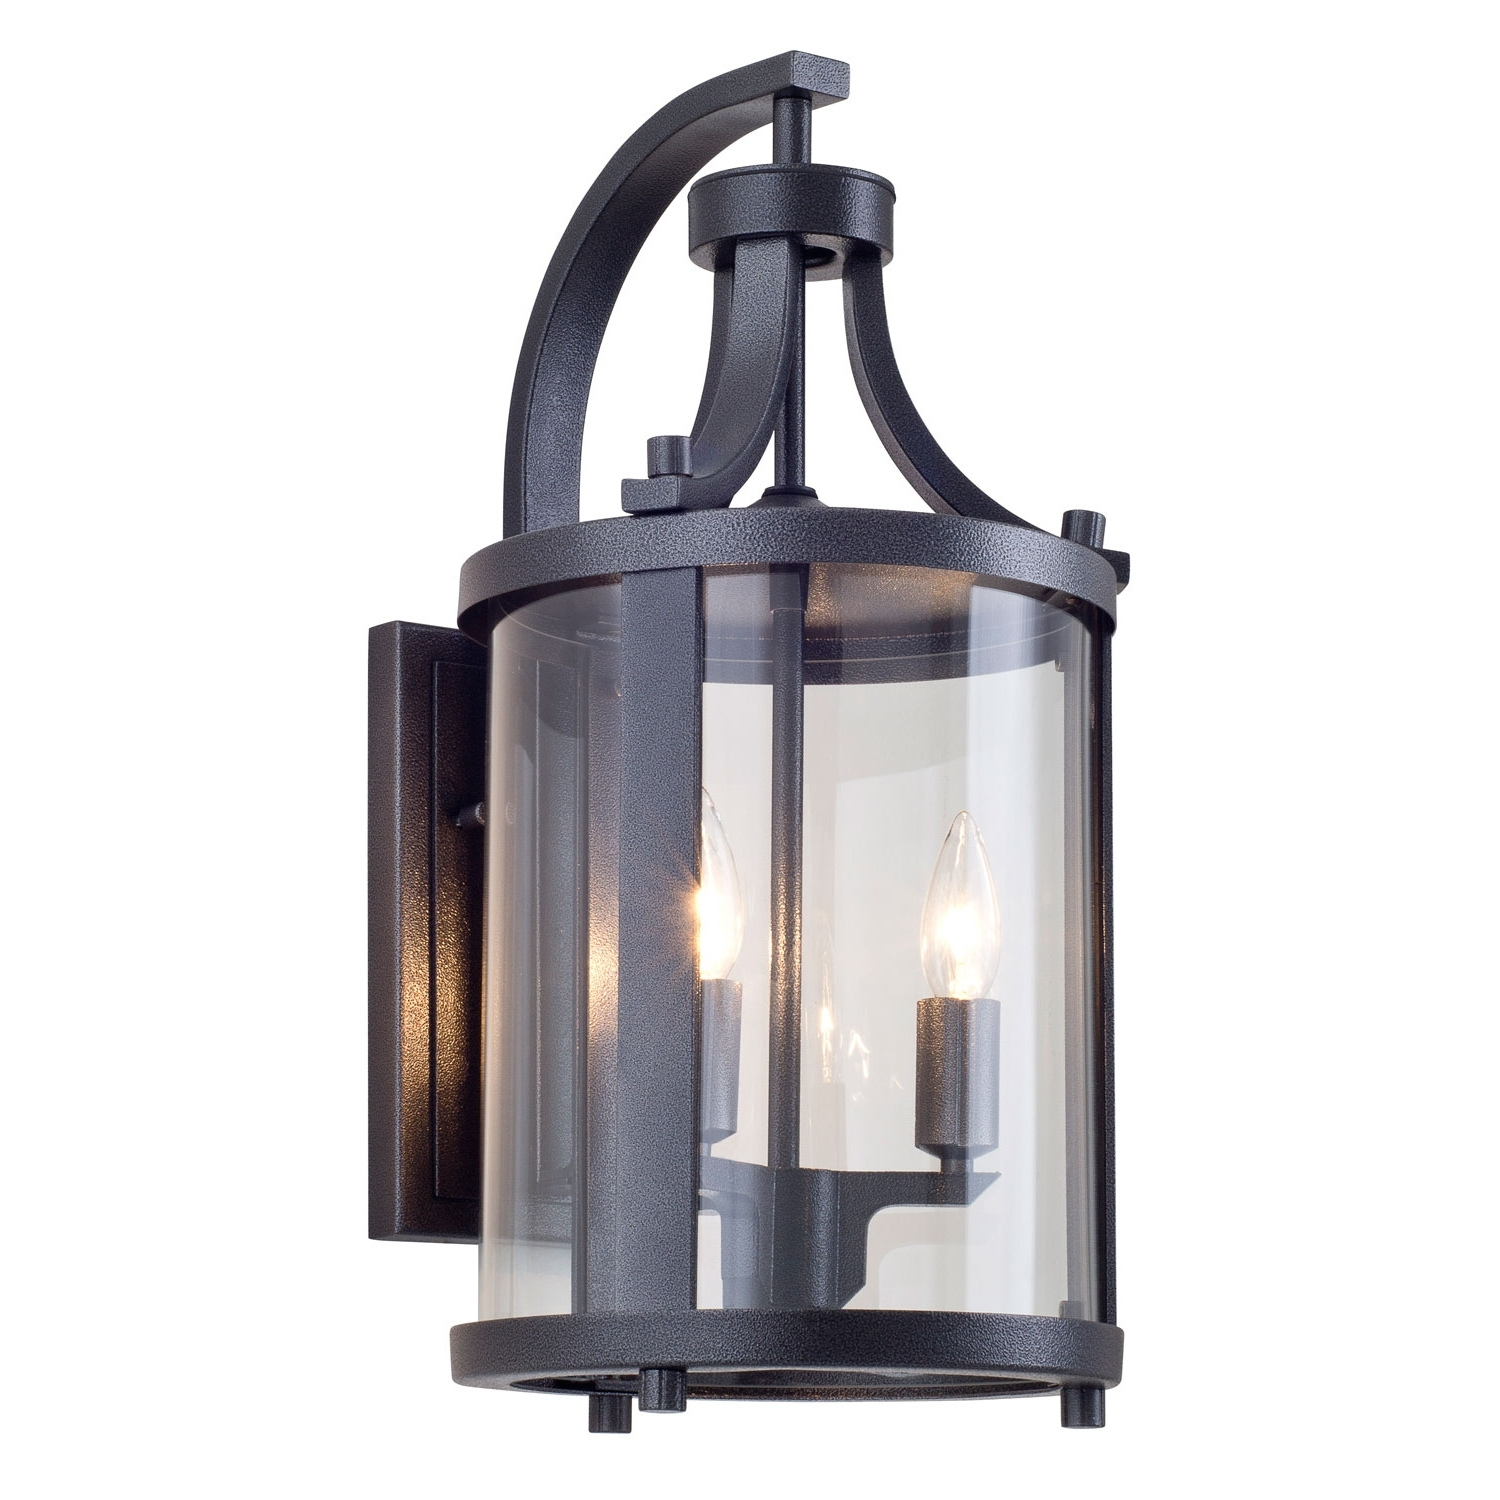 Outdoor Wall Lighting On Sale (View 9 of 20)